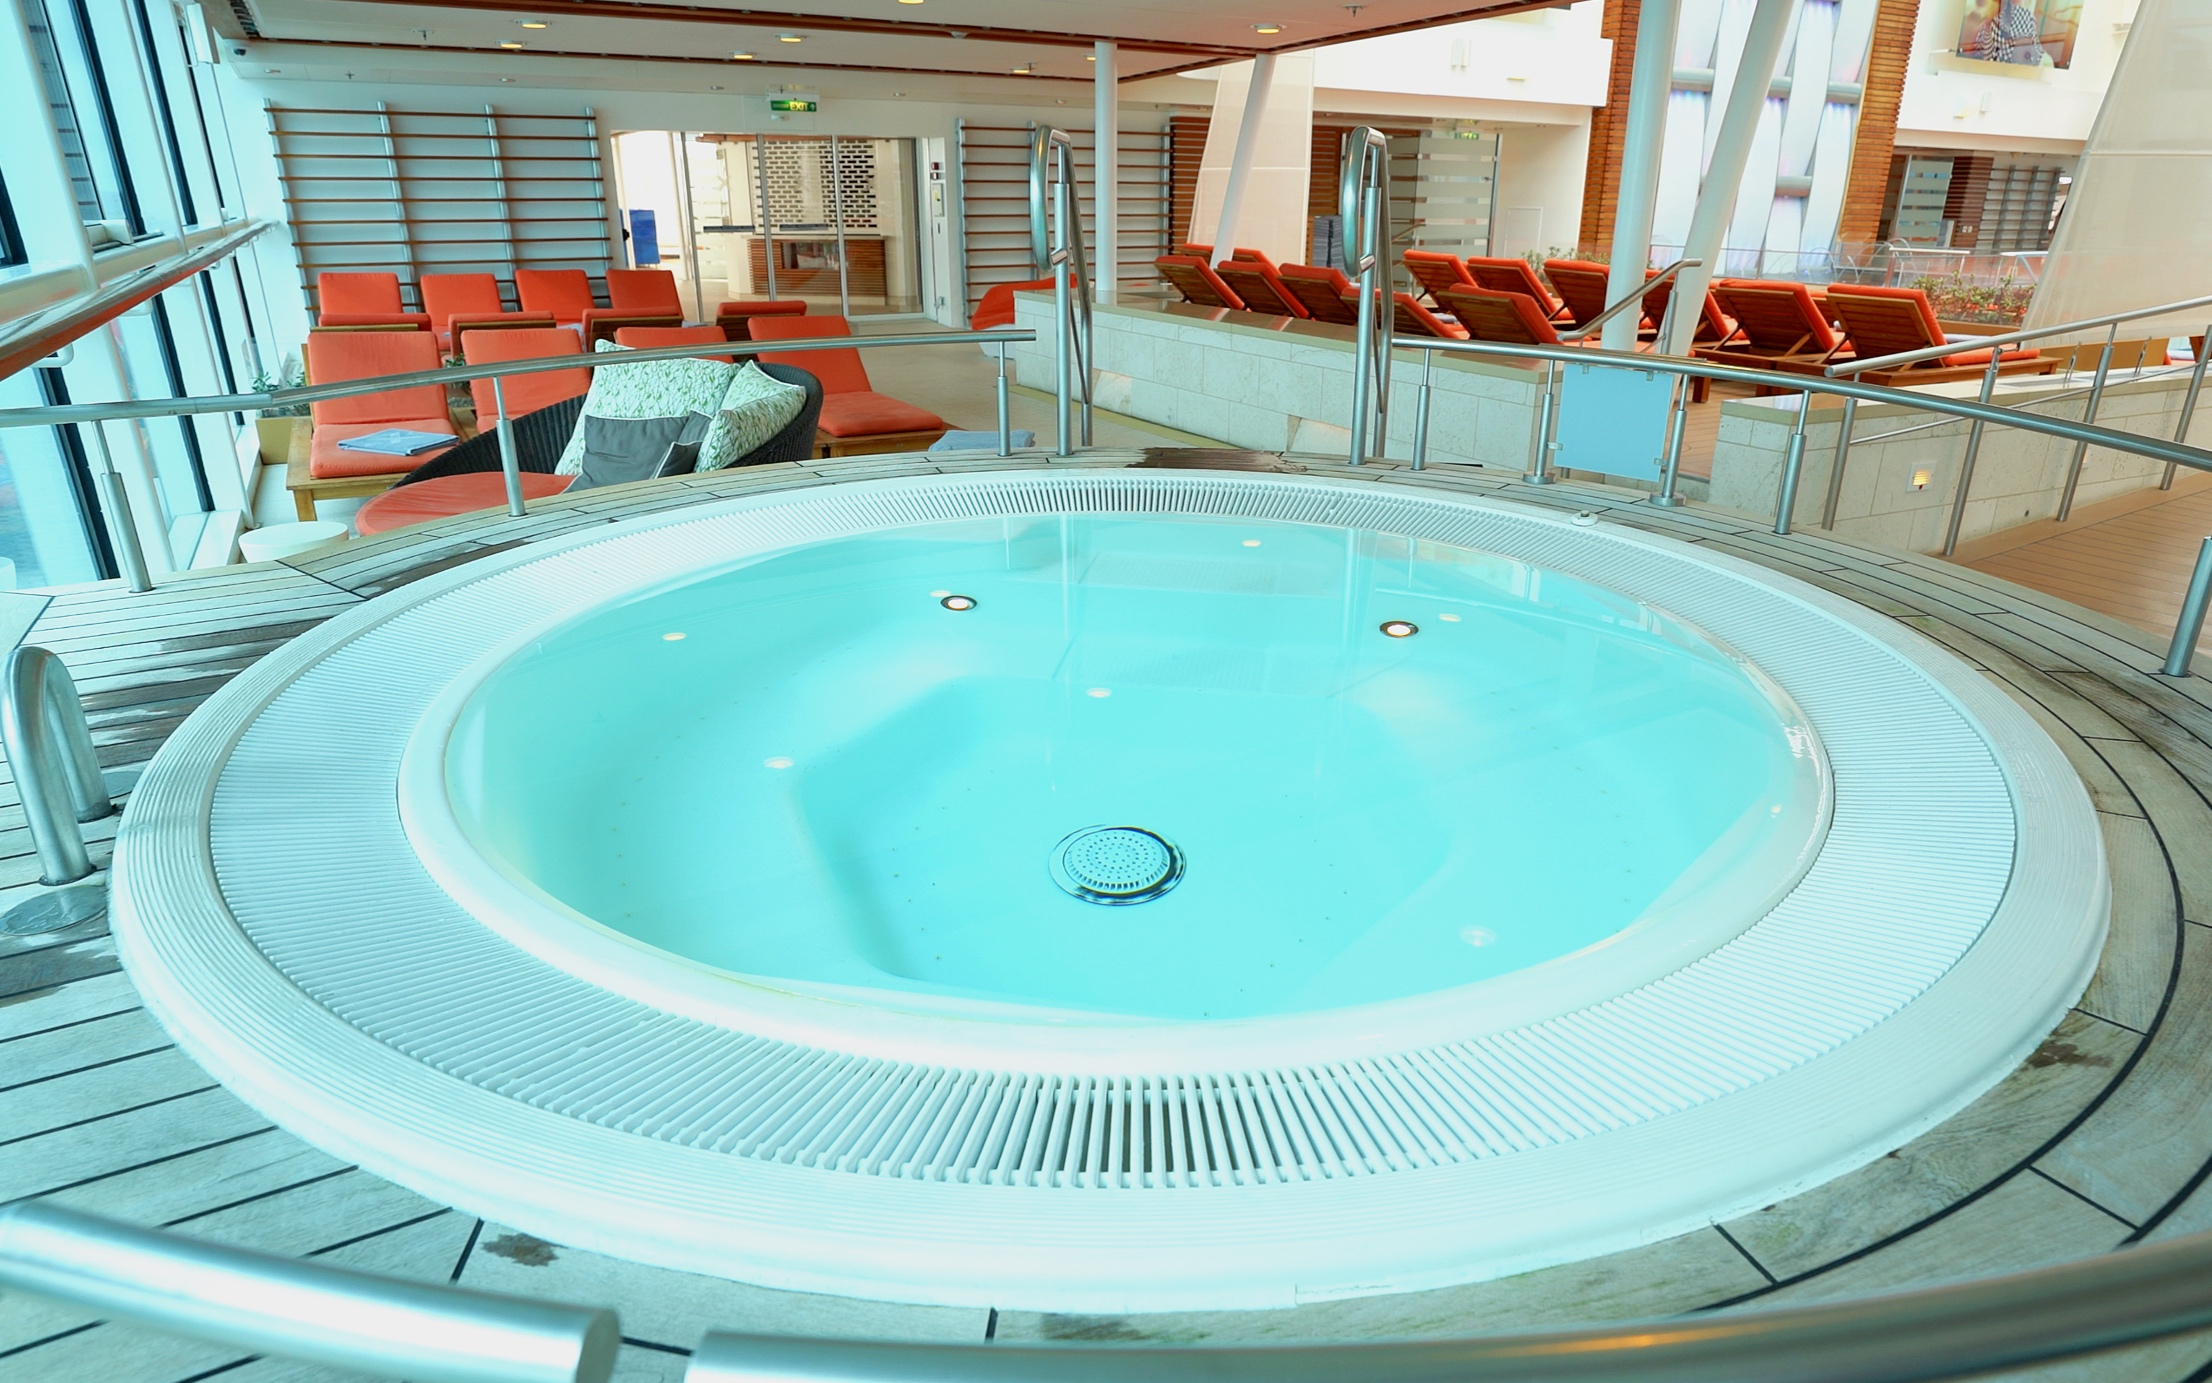 One of two solarium hot tubs